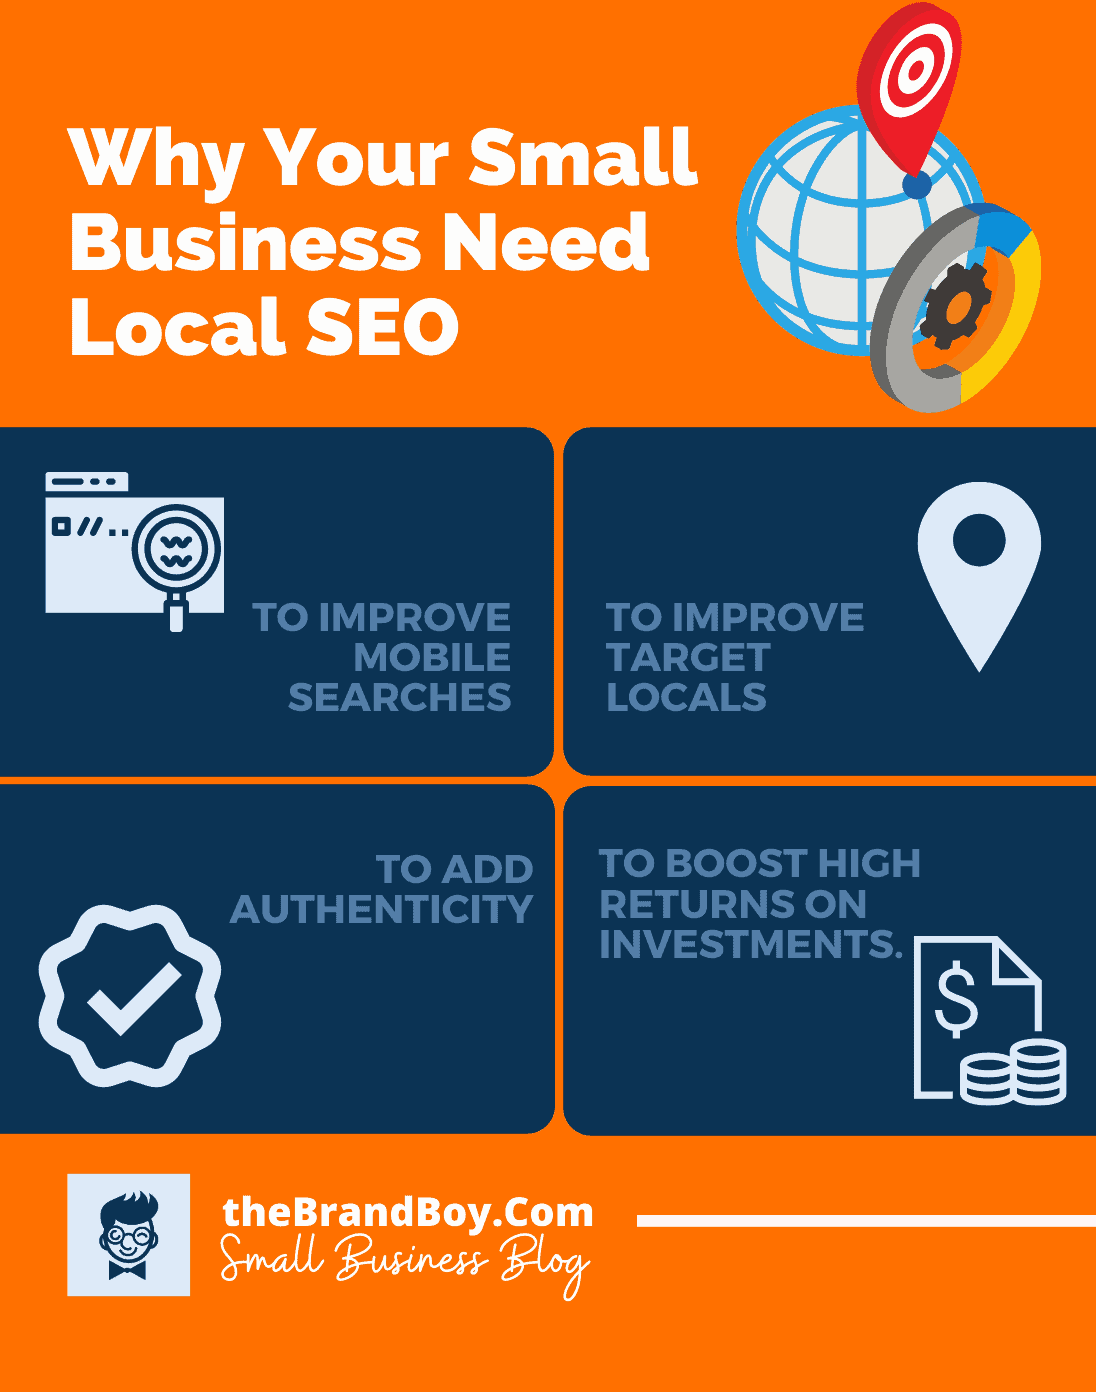 why small business need local seo